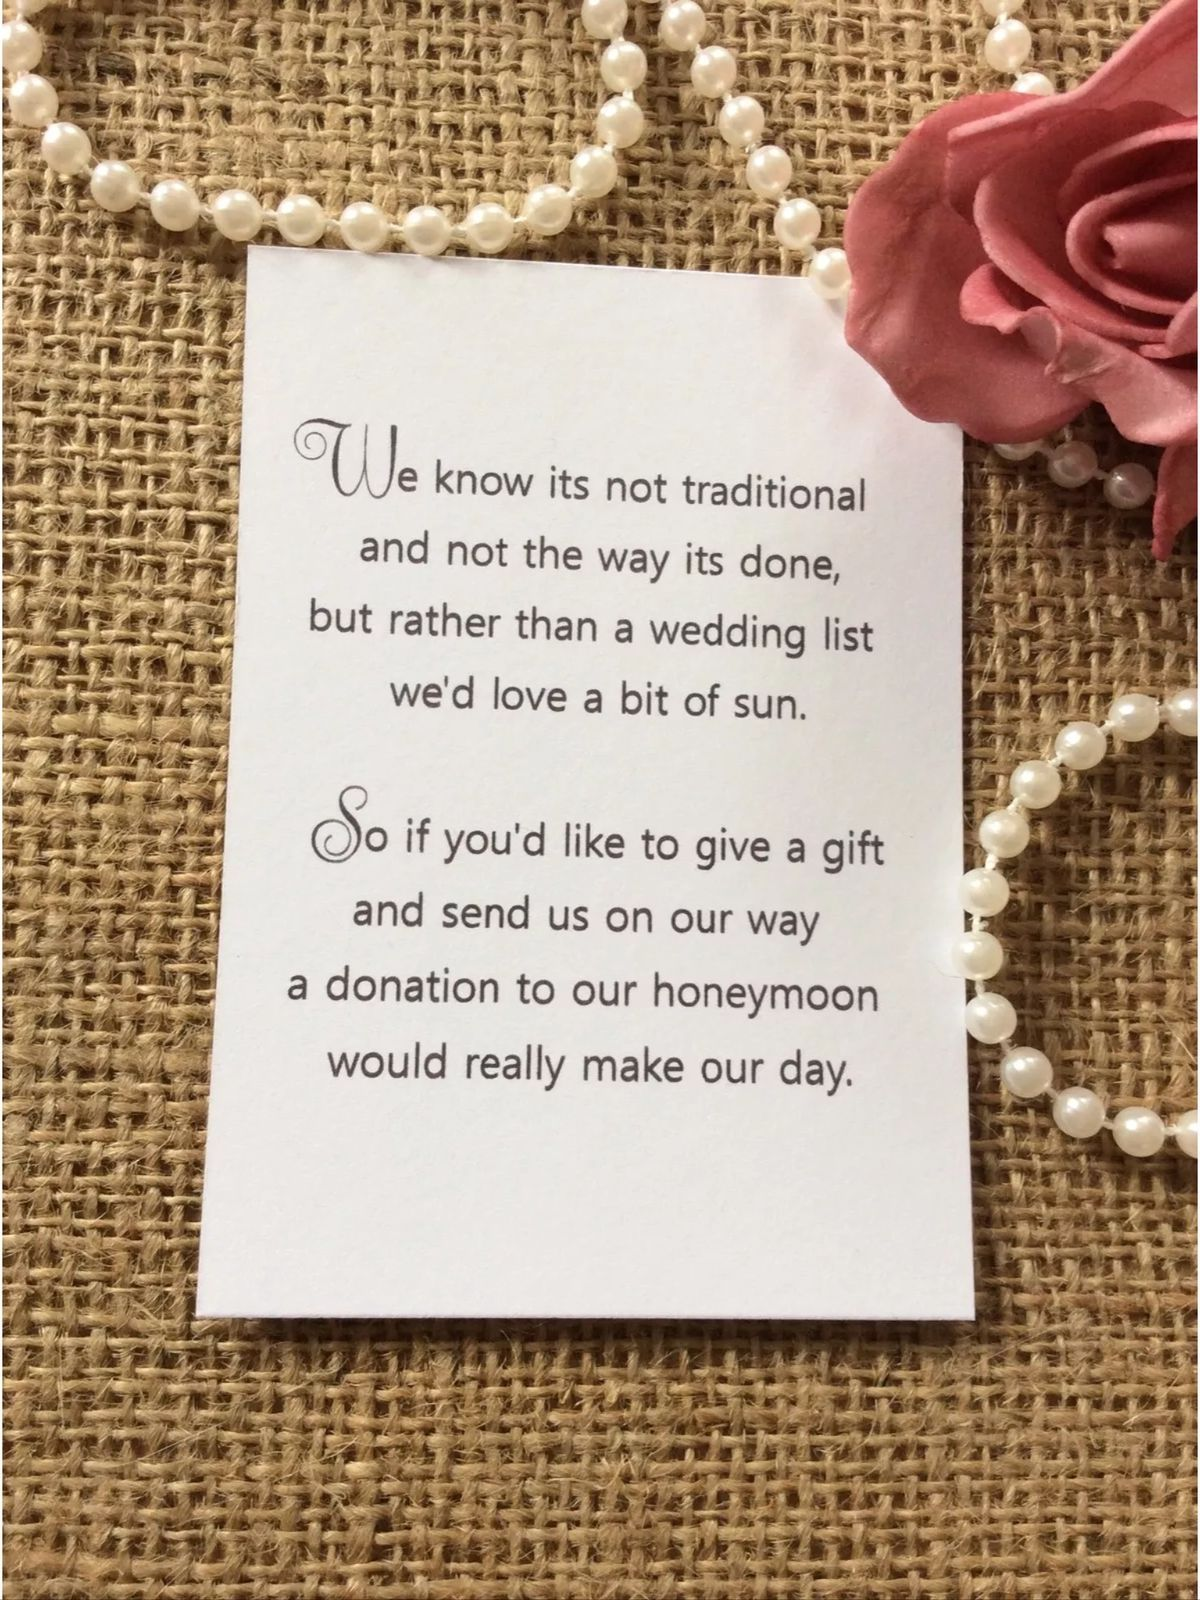 Money For Wedding Gift Cash Or Check : 25 /50 WEDDING GIFT MONEY POEM SMALL CARDS ASKING FOR MONEY CASH ...